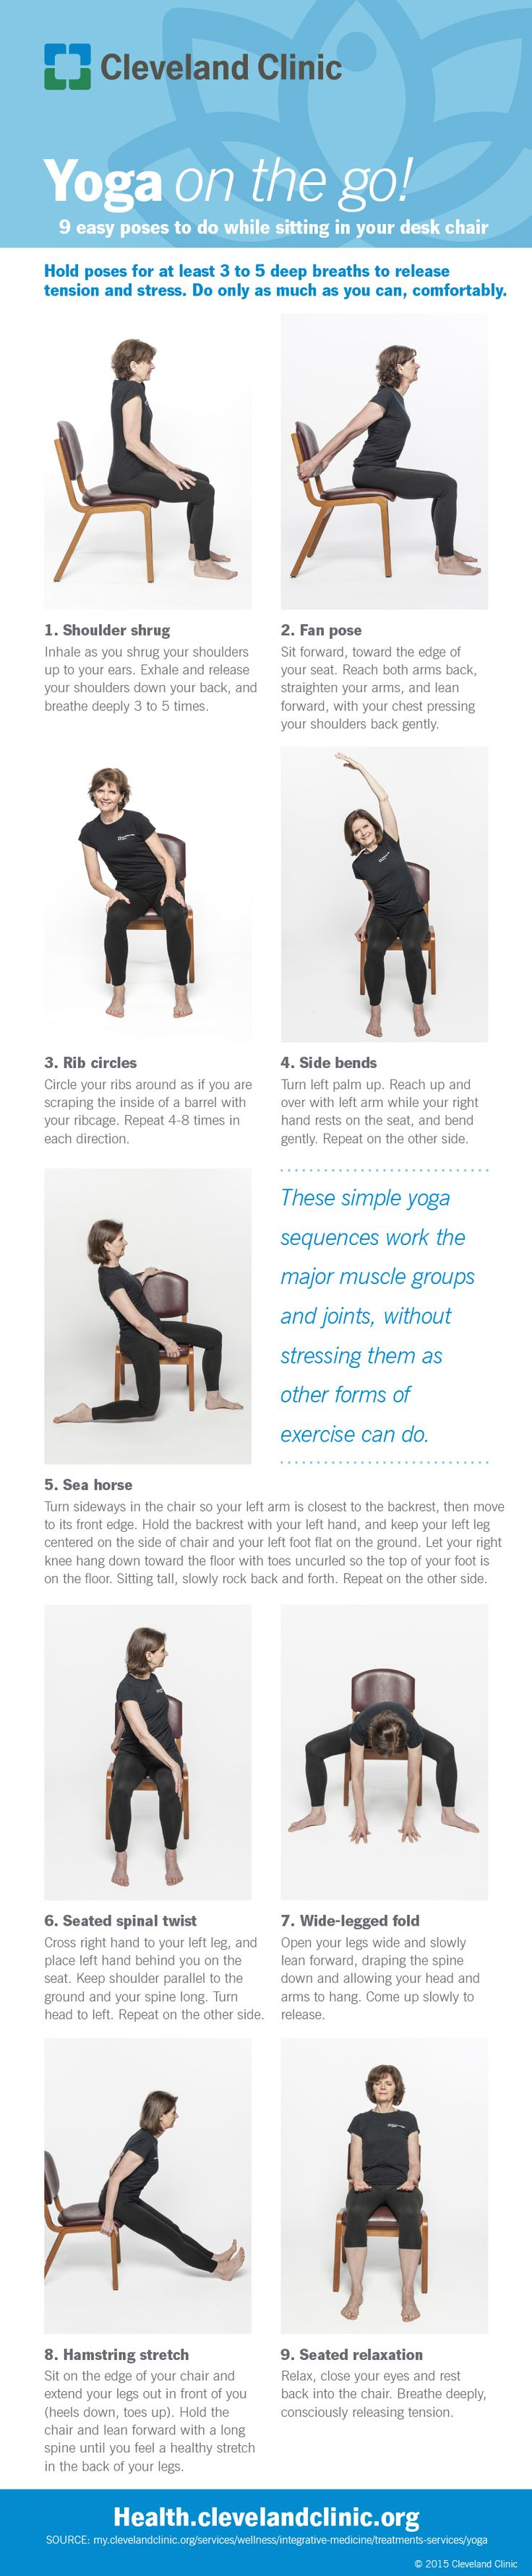 9 easy chair yoga poses to try at work. #infographic